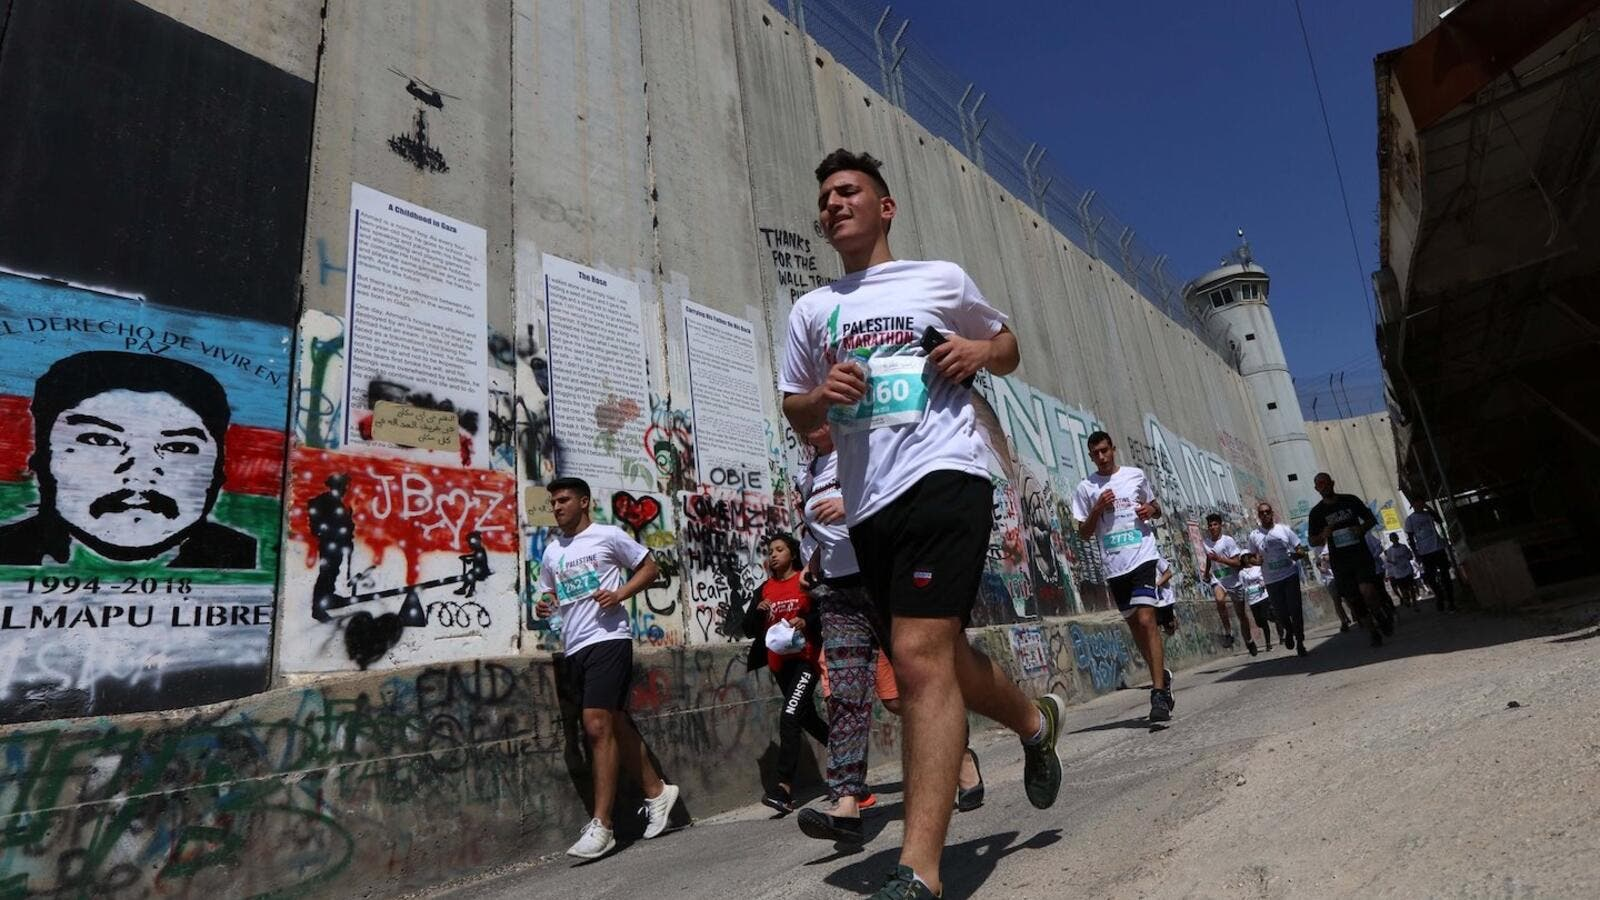 Participants in the Palestine Marathon running along the Israeli apartheid wall surrounding the biblical city of Bethlehem. (Photo: WAFA Images / Ahmad Mizher)